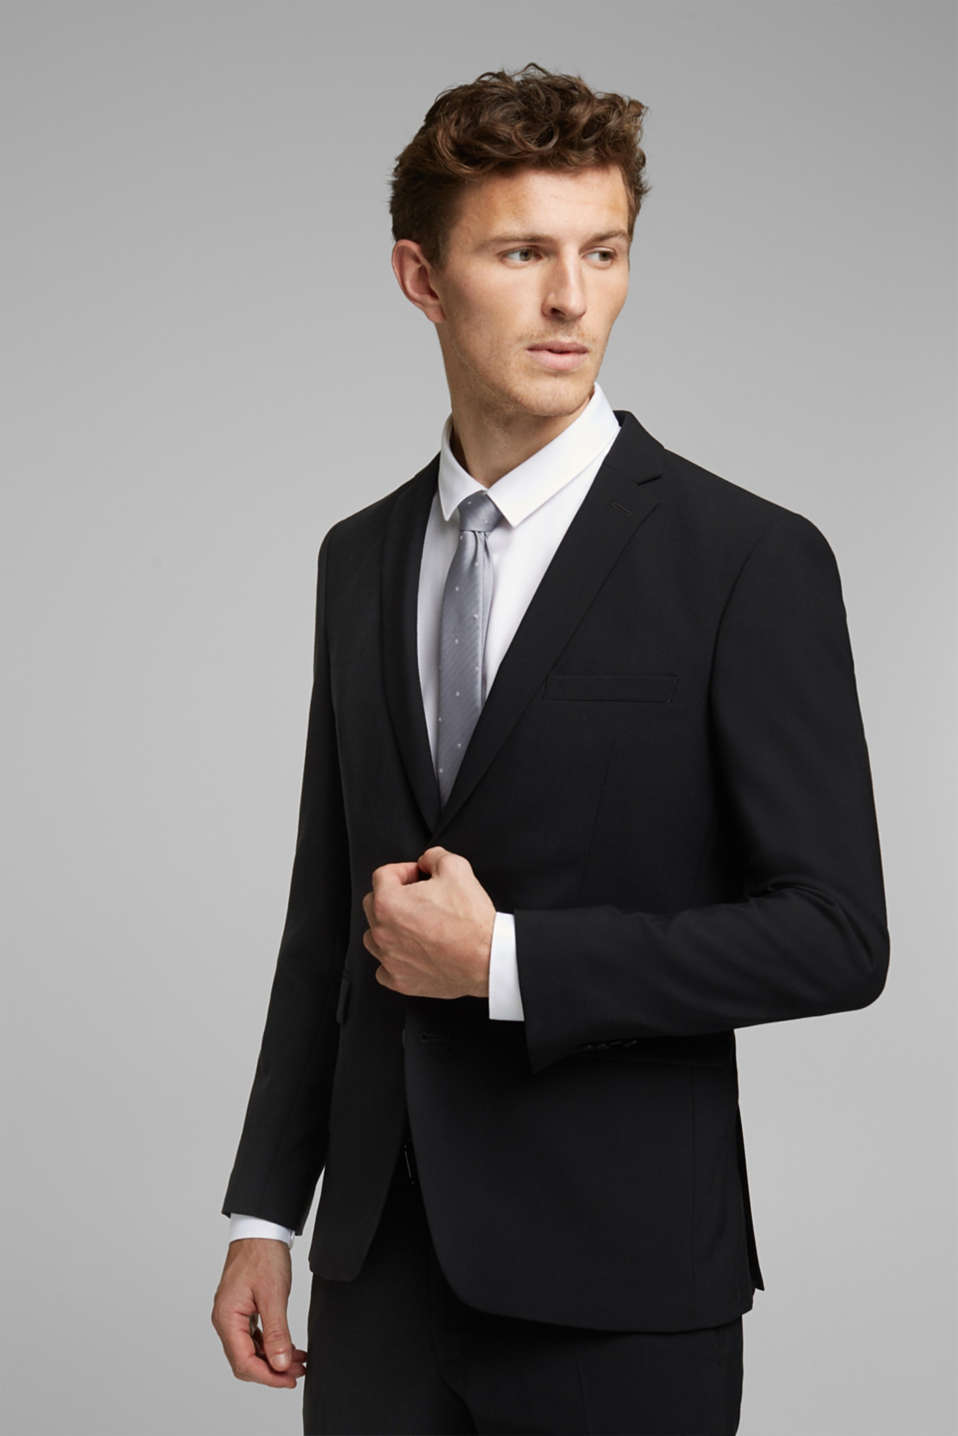 ACTIVE SUIT tailored jacket, wool blend, BLACK, detail image number 0